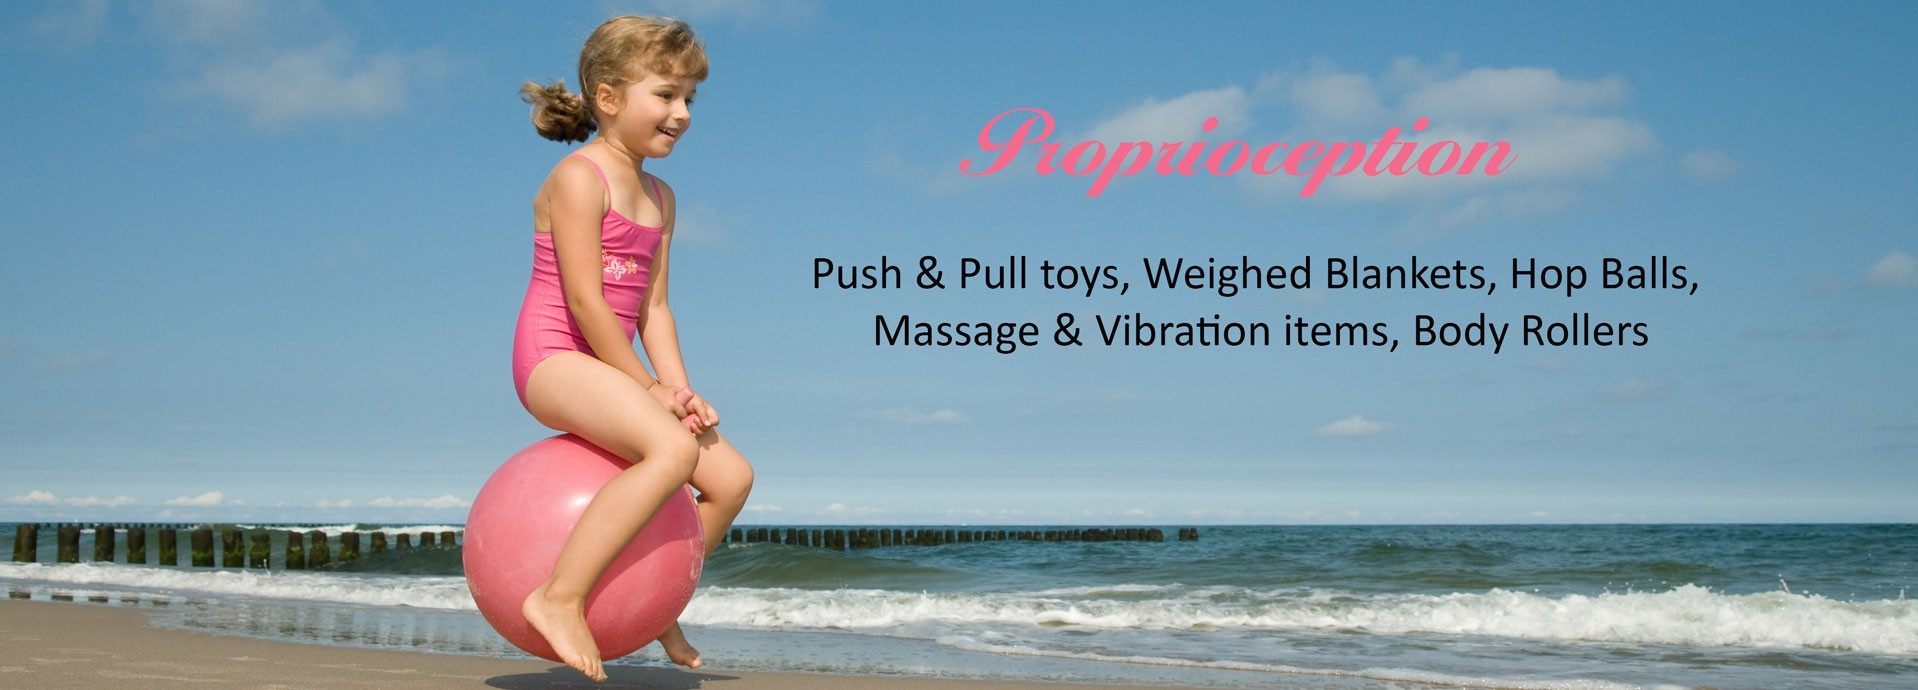 Proprioception: Push & Pull toys, Weighed Blankets, Hop Balls, Massage & Vibration items, Body Rollers